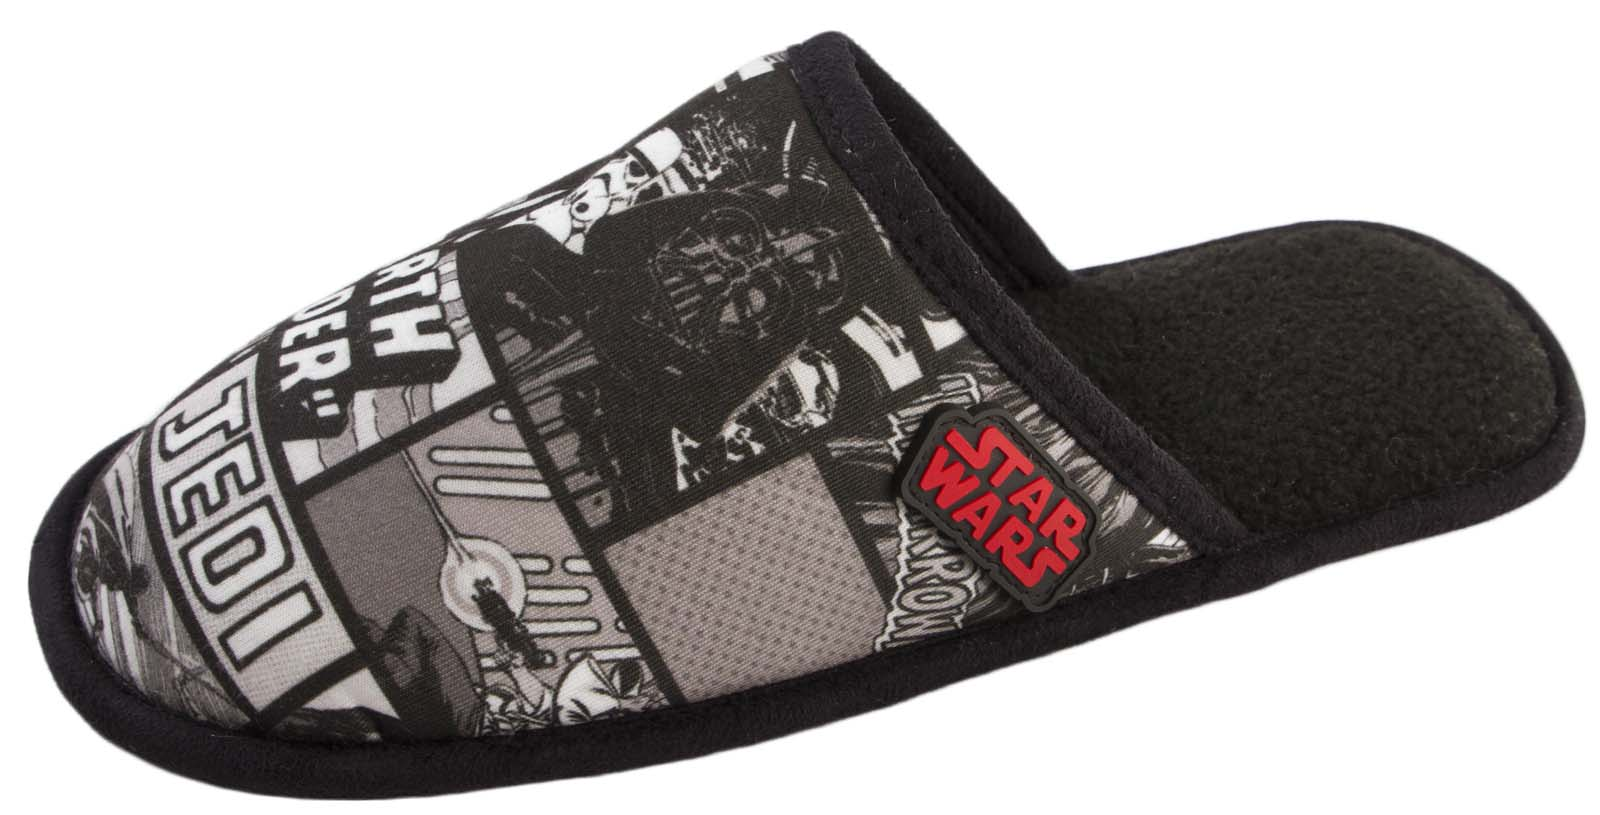 Mens Star Wars Shoes Uk